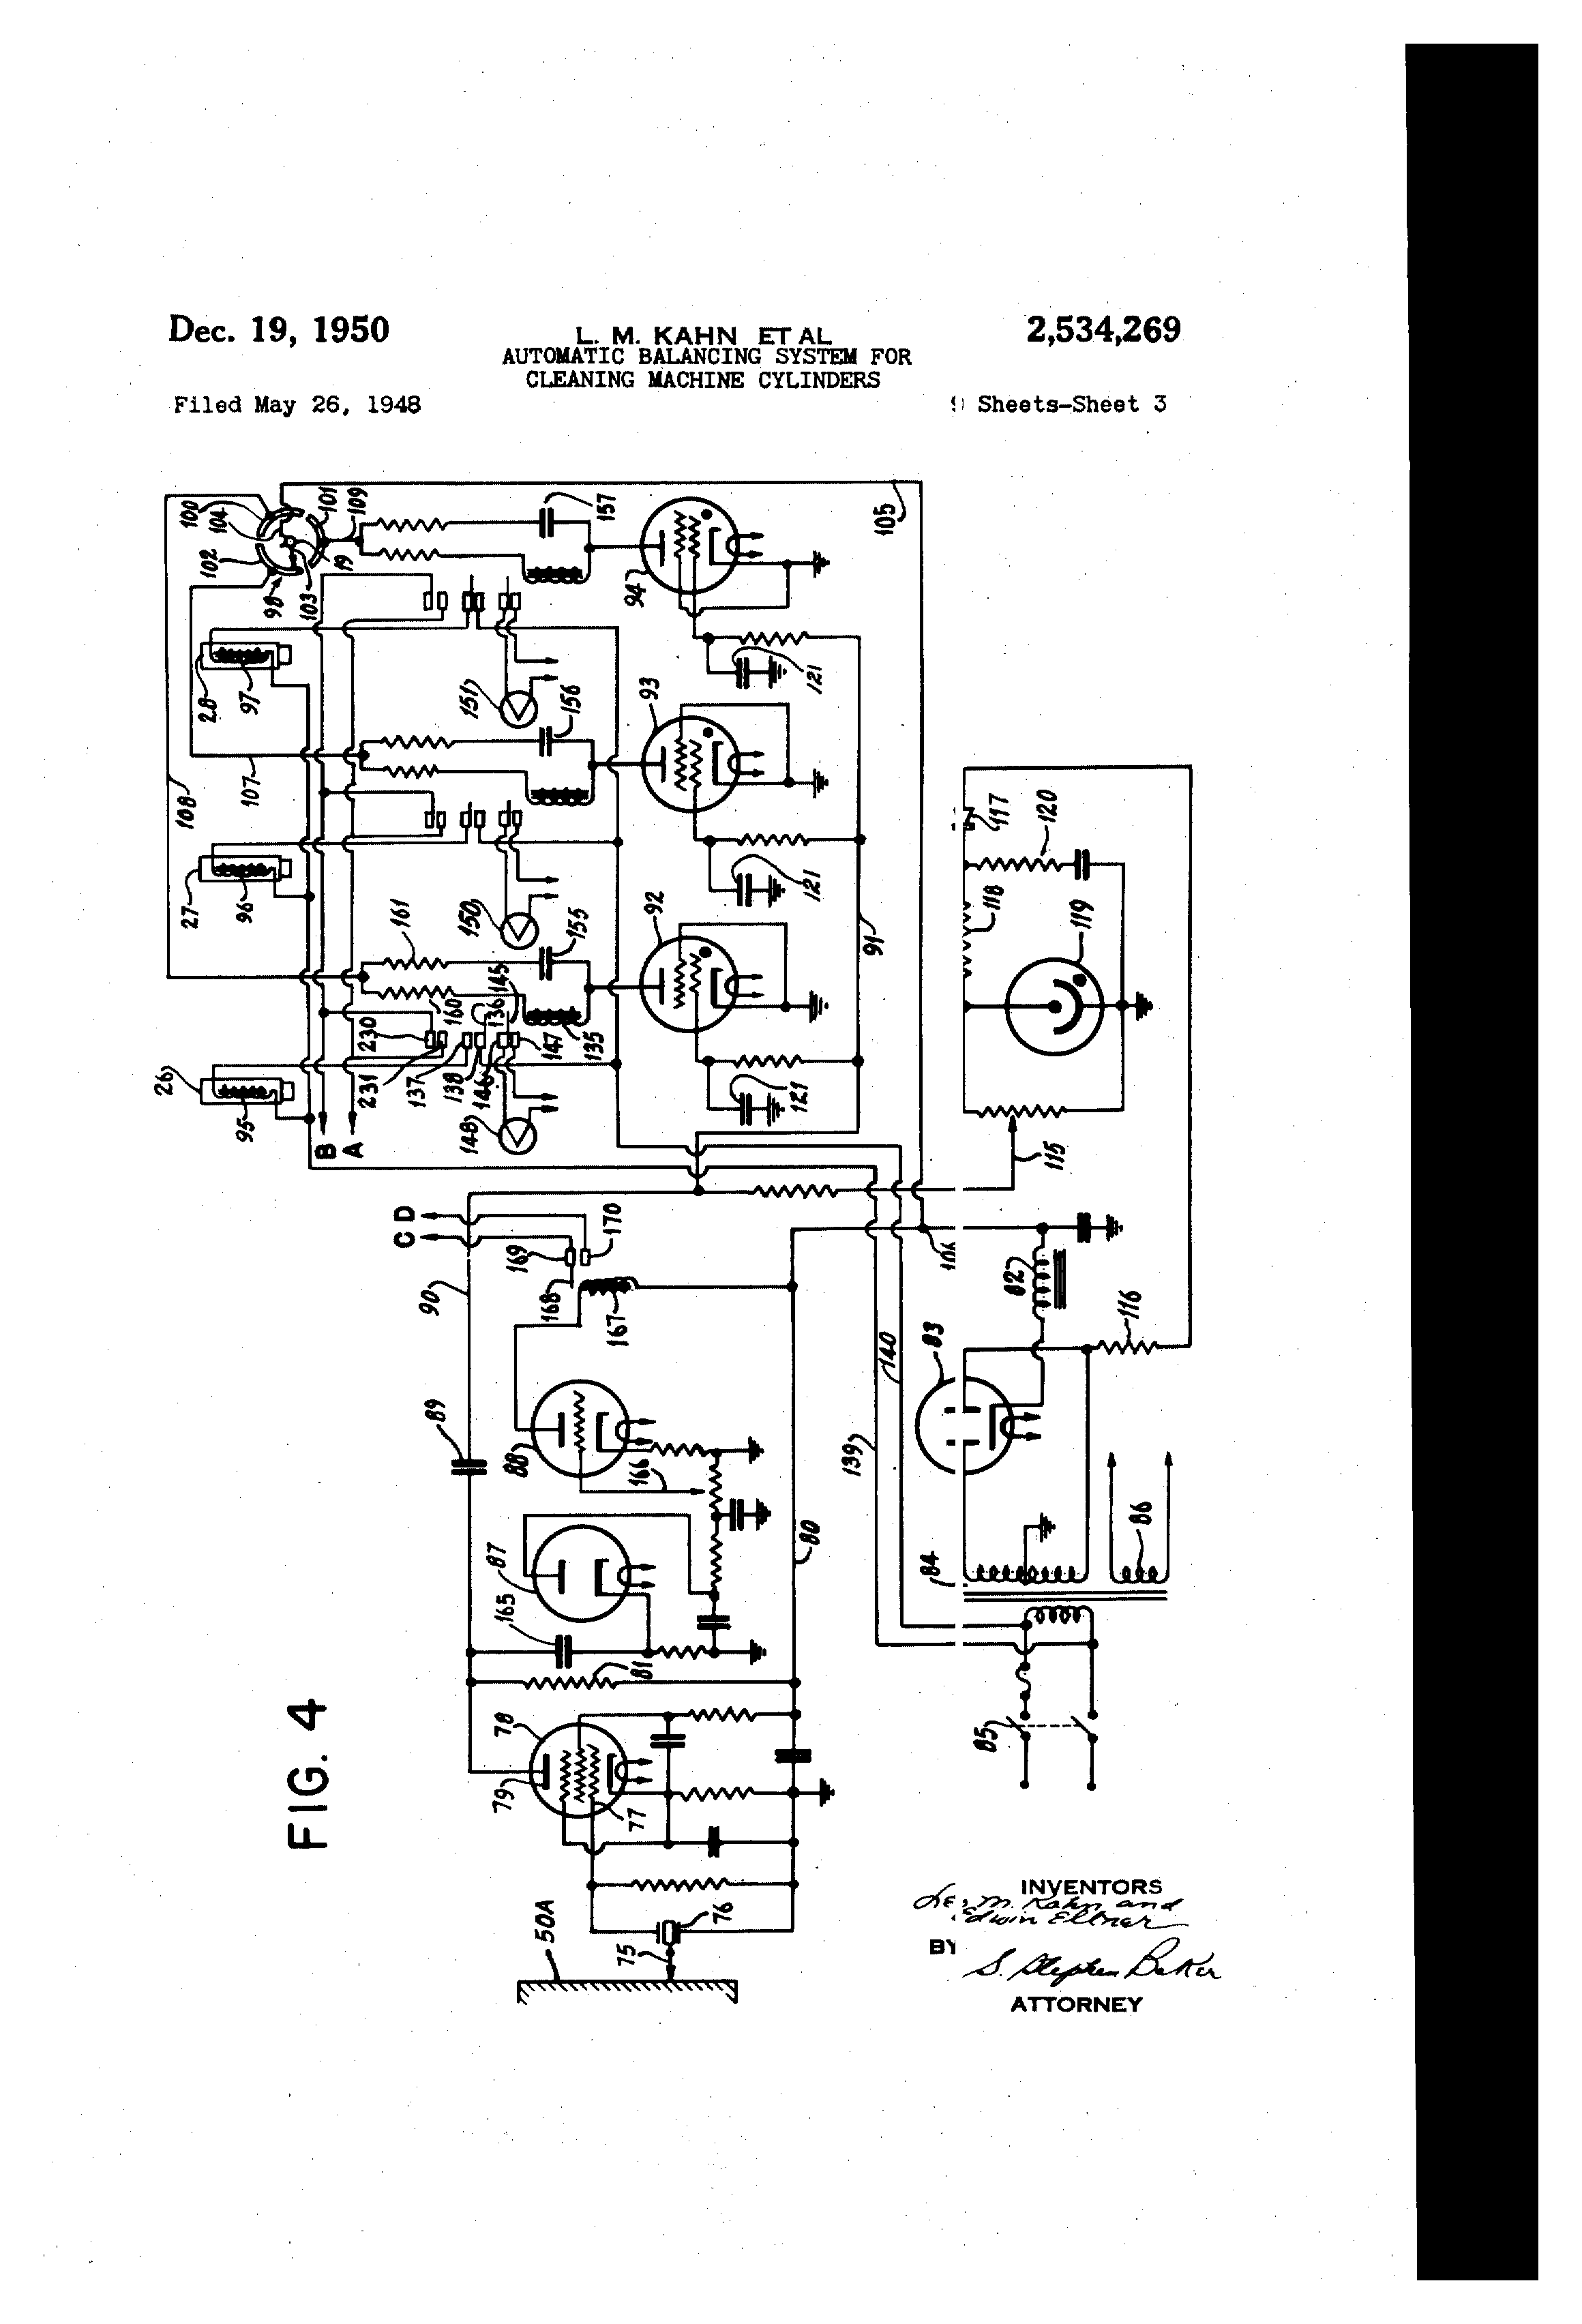 Wascomat Td75 Wiring Diagram Trusted Diagrams Speed Queen Schematics Whirlpool Exciting Milnor Pictures Best